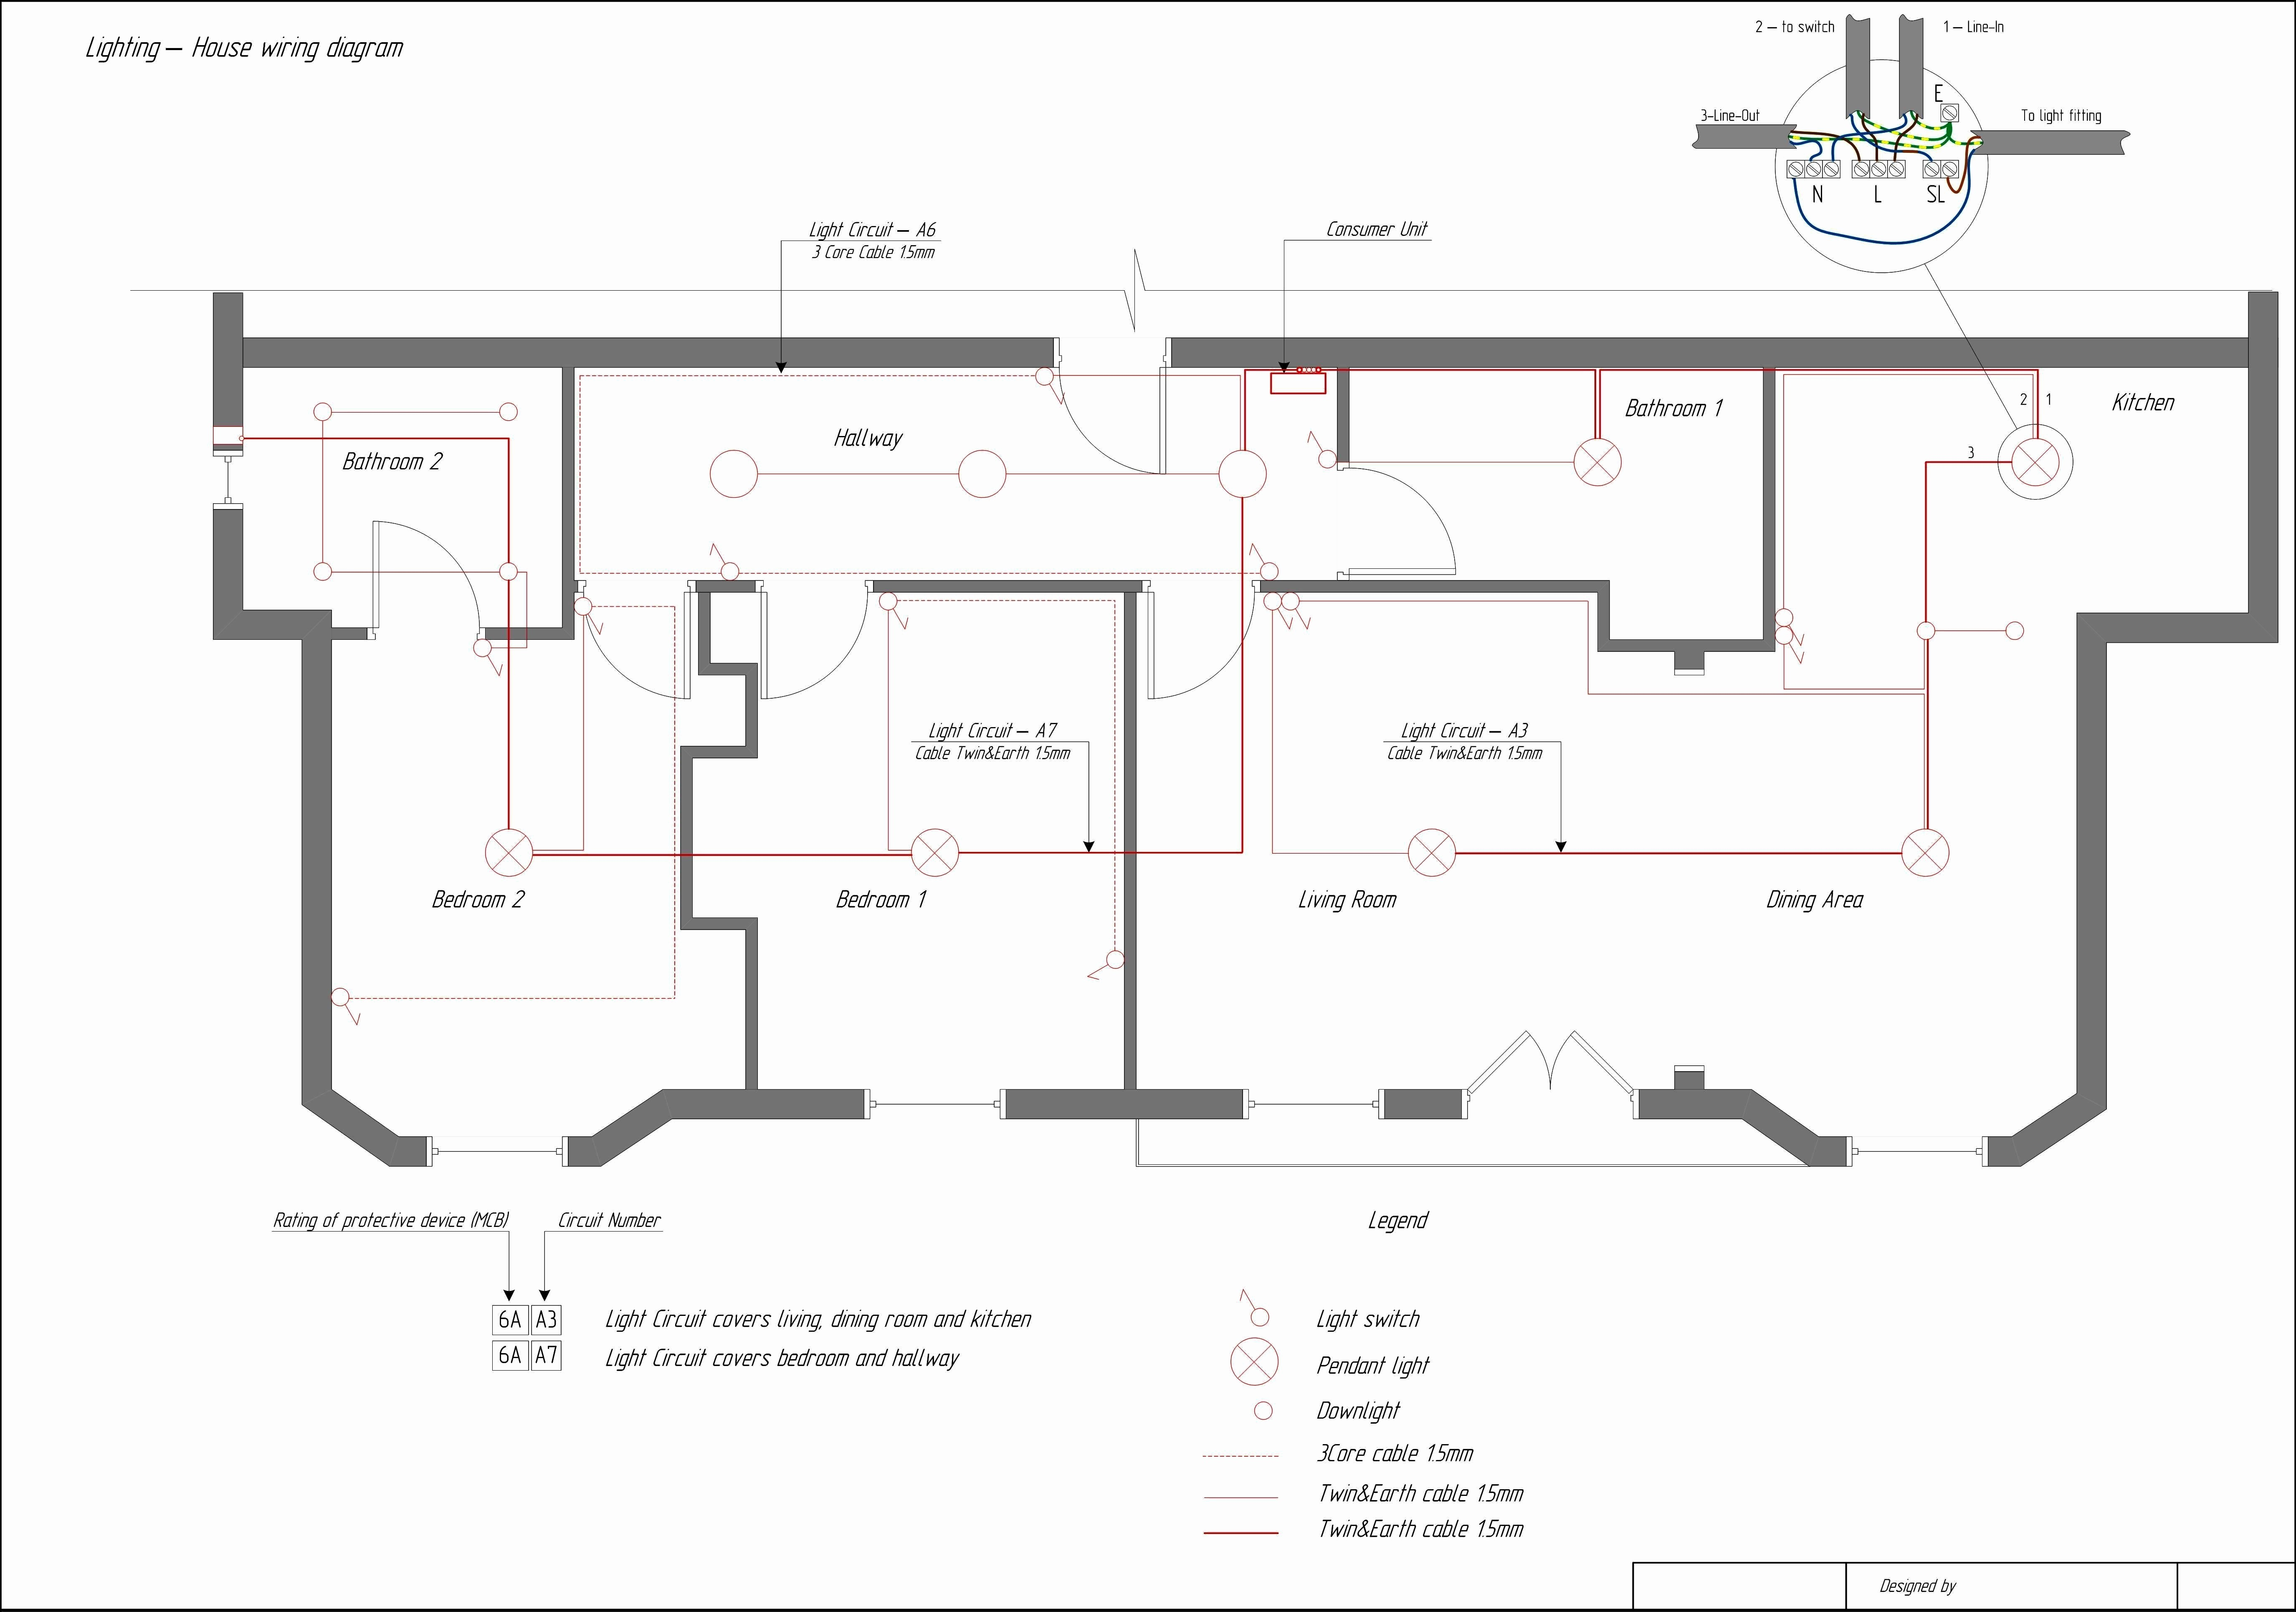 2 Circuit 3 Terminal Lamp socket Wiring Diagram Lovely New How to Wire Multiple Light Switches